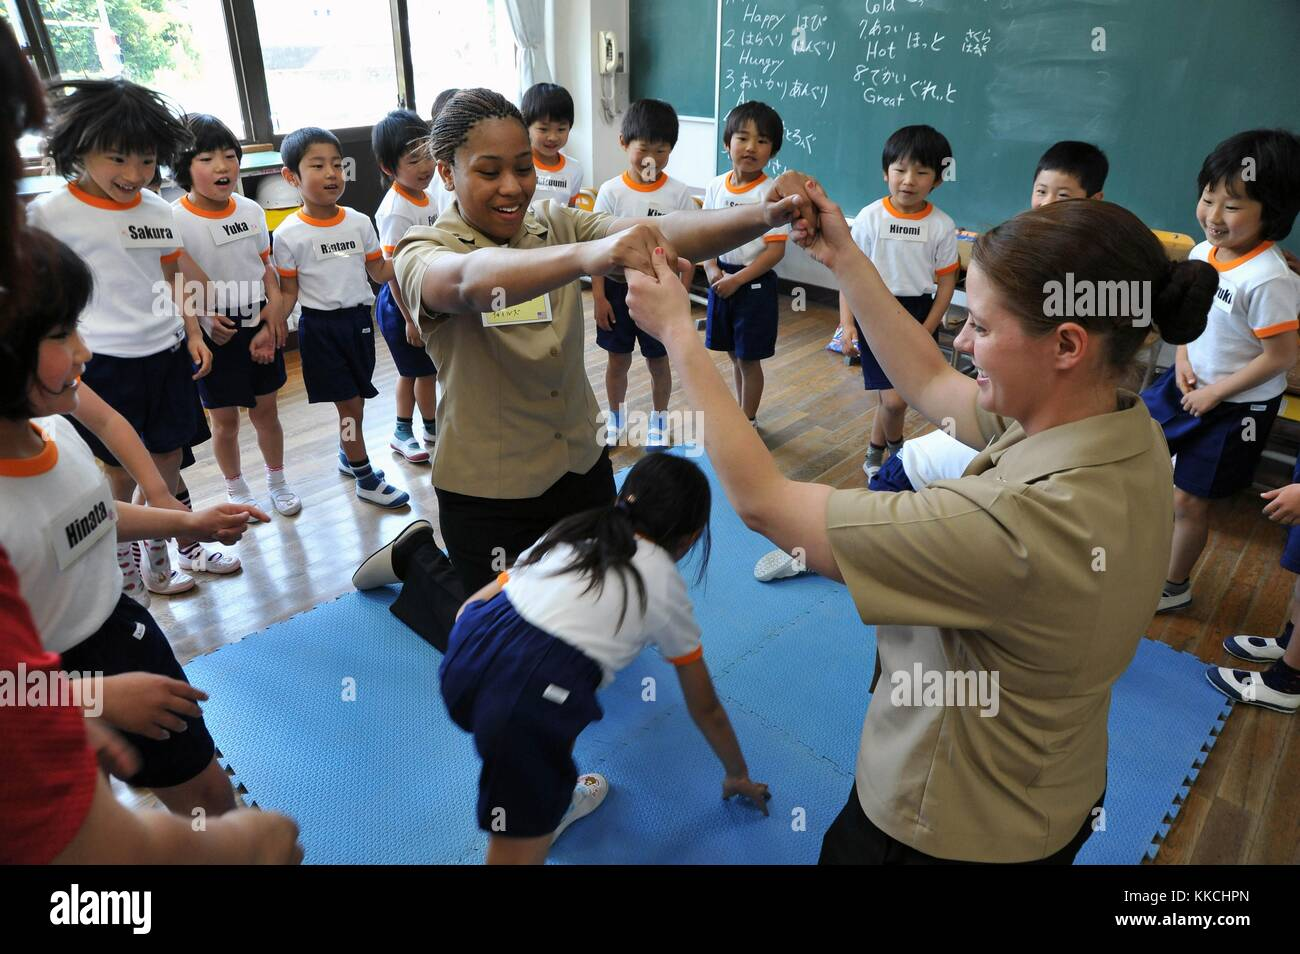 Hull Maintenance Technician 3rd Class Jane Clark and Boatswain's Mate Seaman Brittany Chiles, assigned to the Arleigh Burke-class guided-missile destroyer USS McCampbell DDG 85, play a game with Ogamo Elementary School first graders, Shimoda, Japan. Image courtesy Mass Communication Specialist Seaman Declan Barnes/US Navy. 2012. Stock Photo